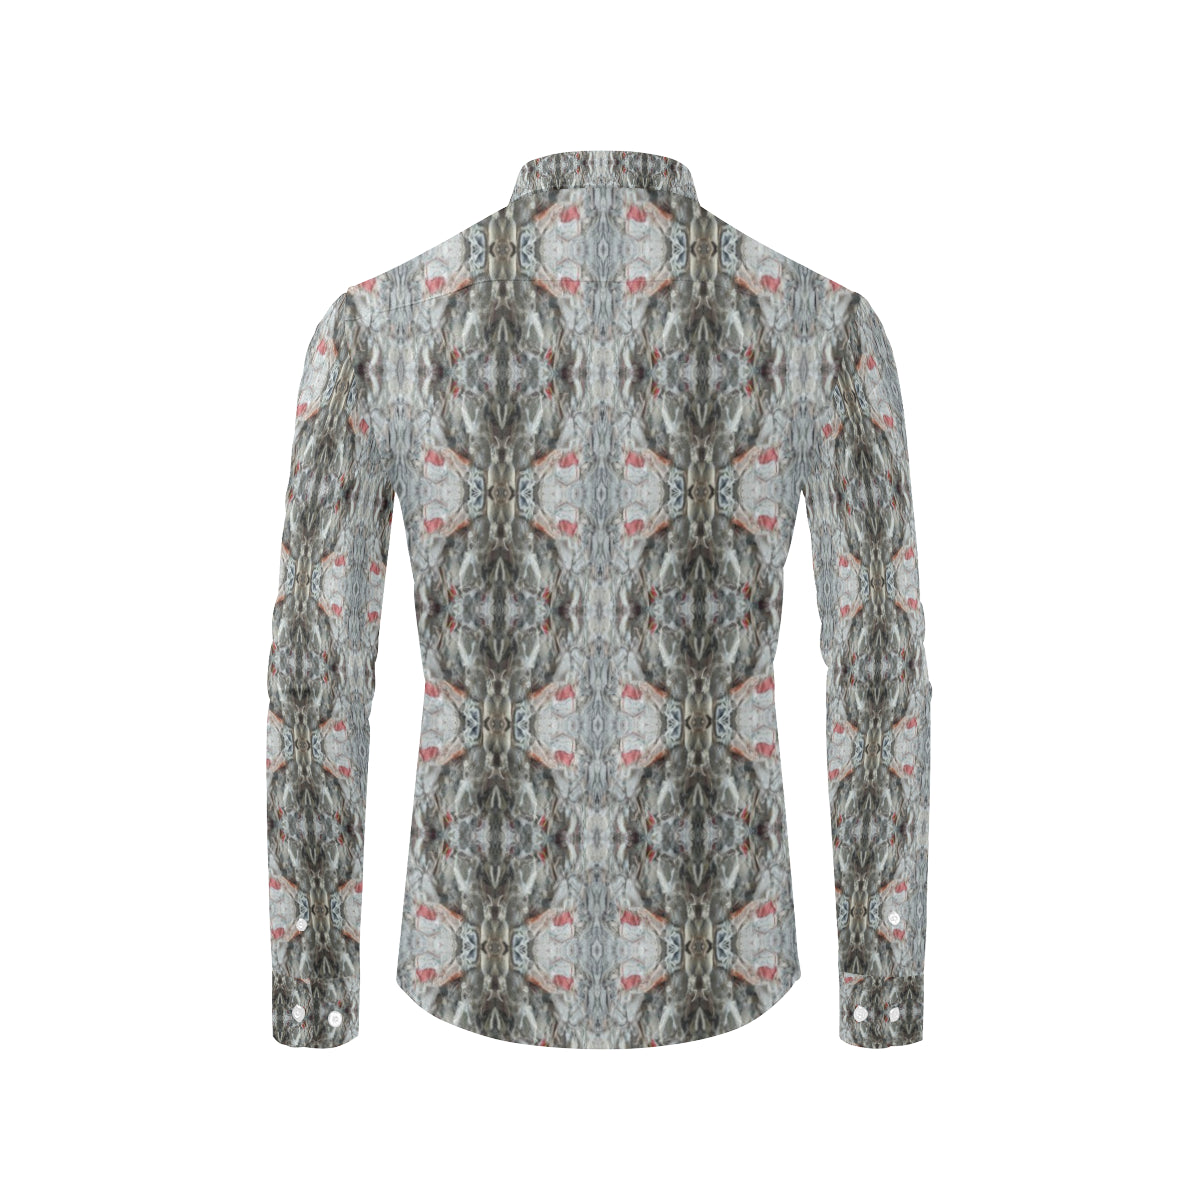 ChuArts Men's All Over Print Long Sleeve Shirt